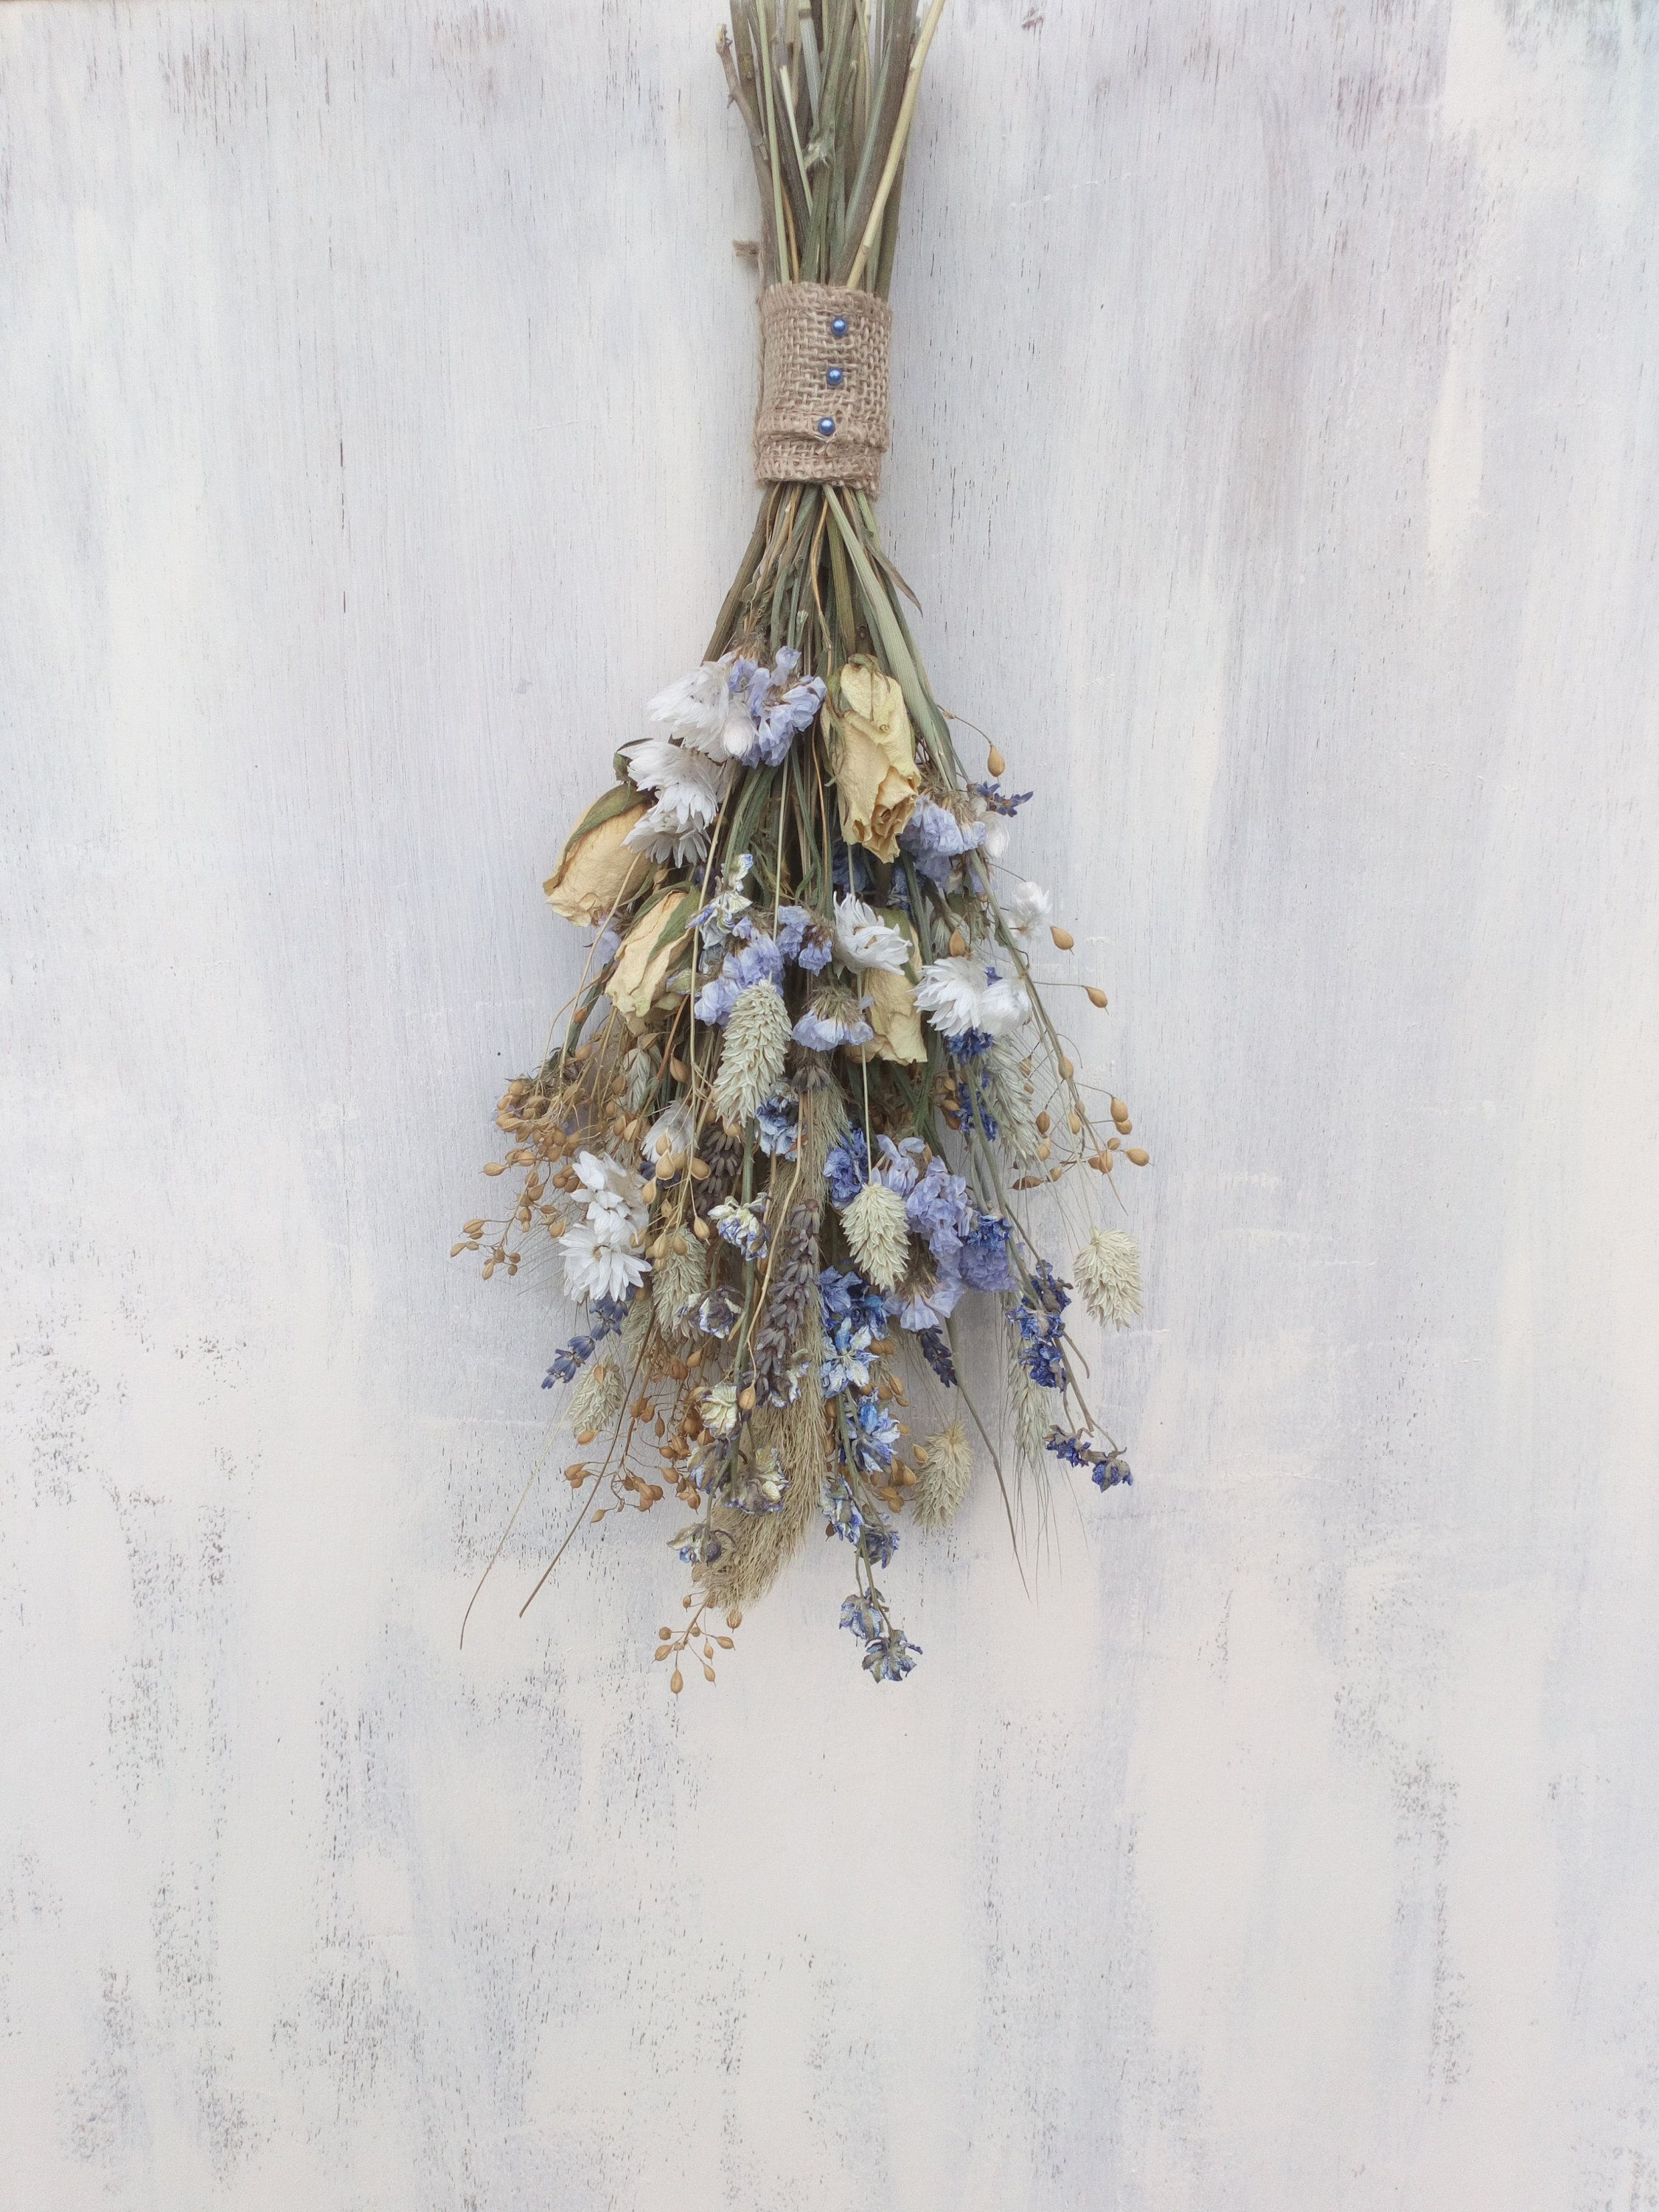 Dried Flower Wall Hanging Cool Tones Dried Flowers Wedding Decor Home Decor Flower Bunch Flowe Hanging Flower Wall Hanging Flower Arrangements Flower Wall